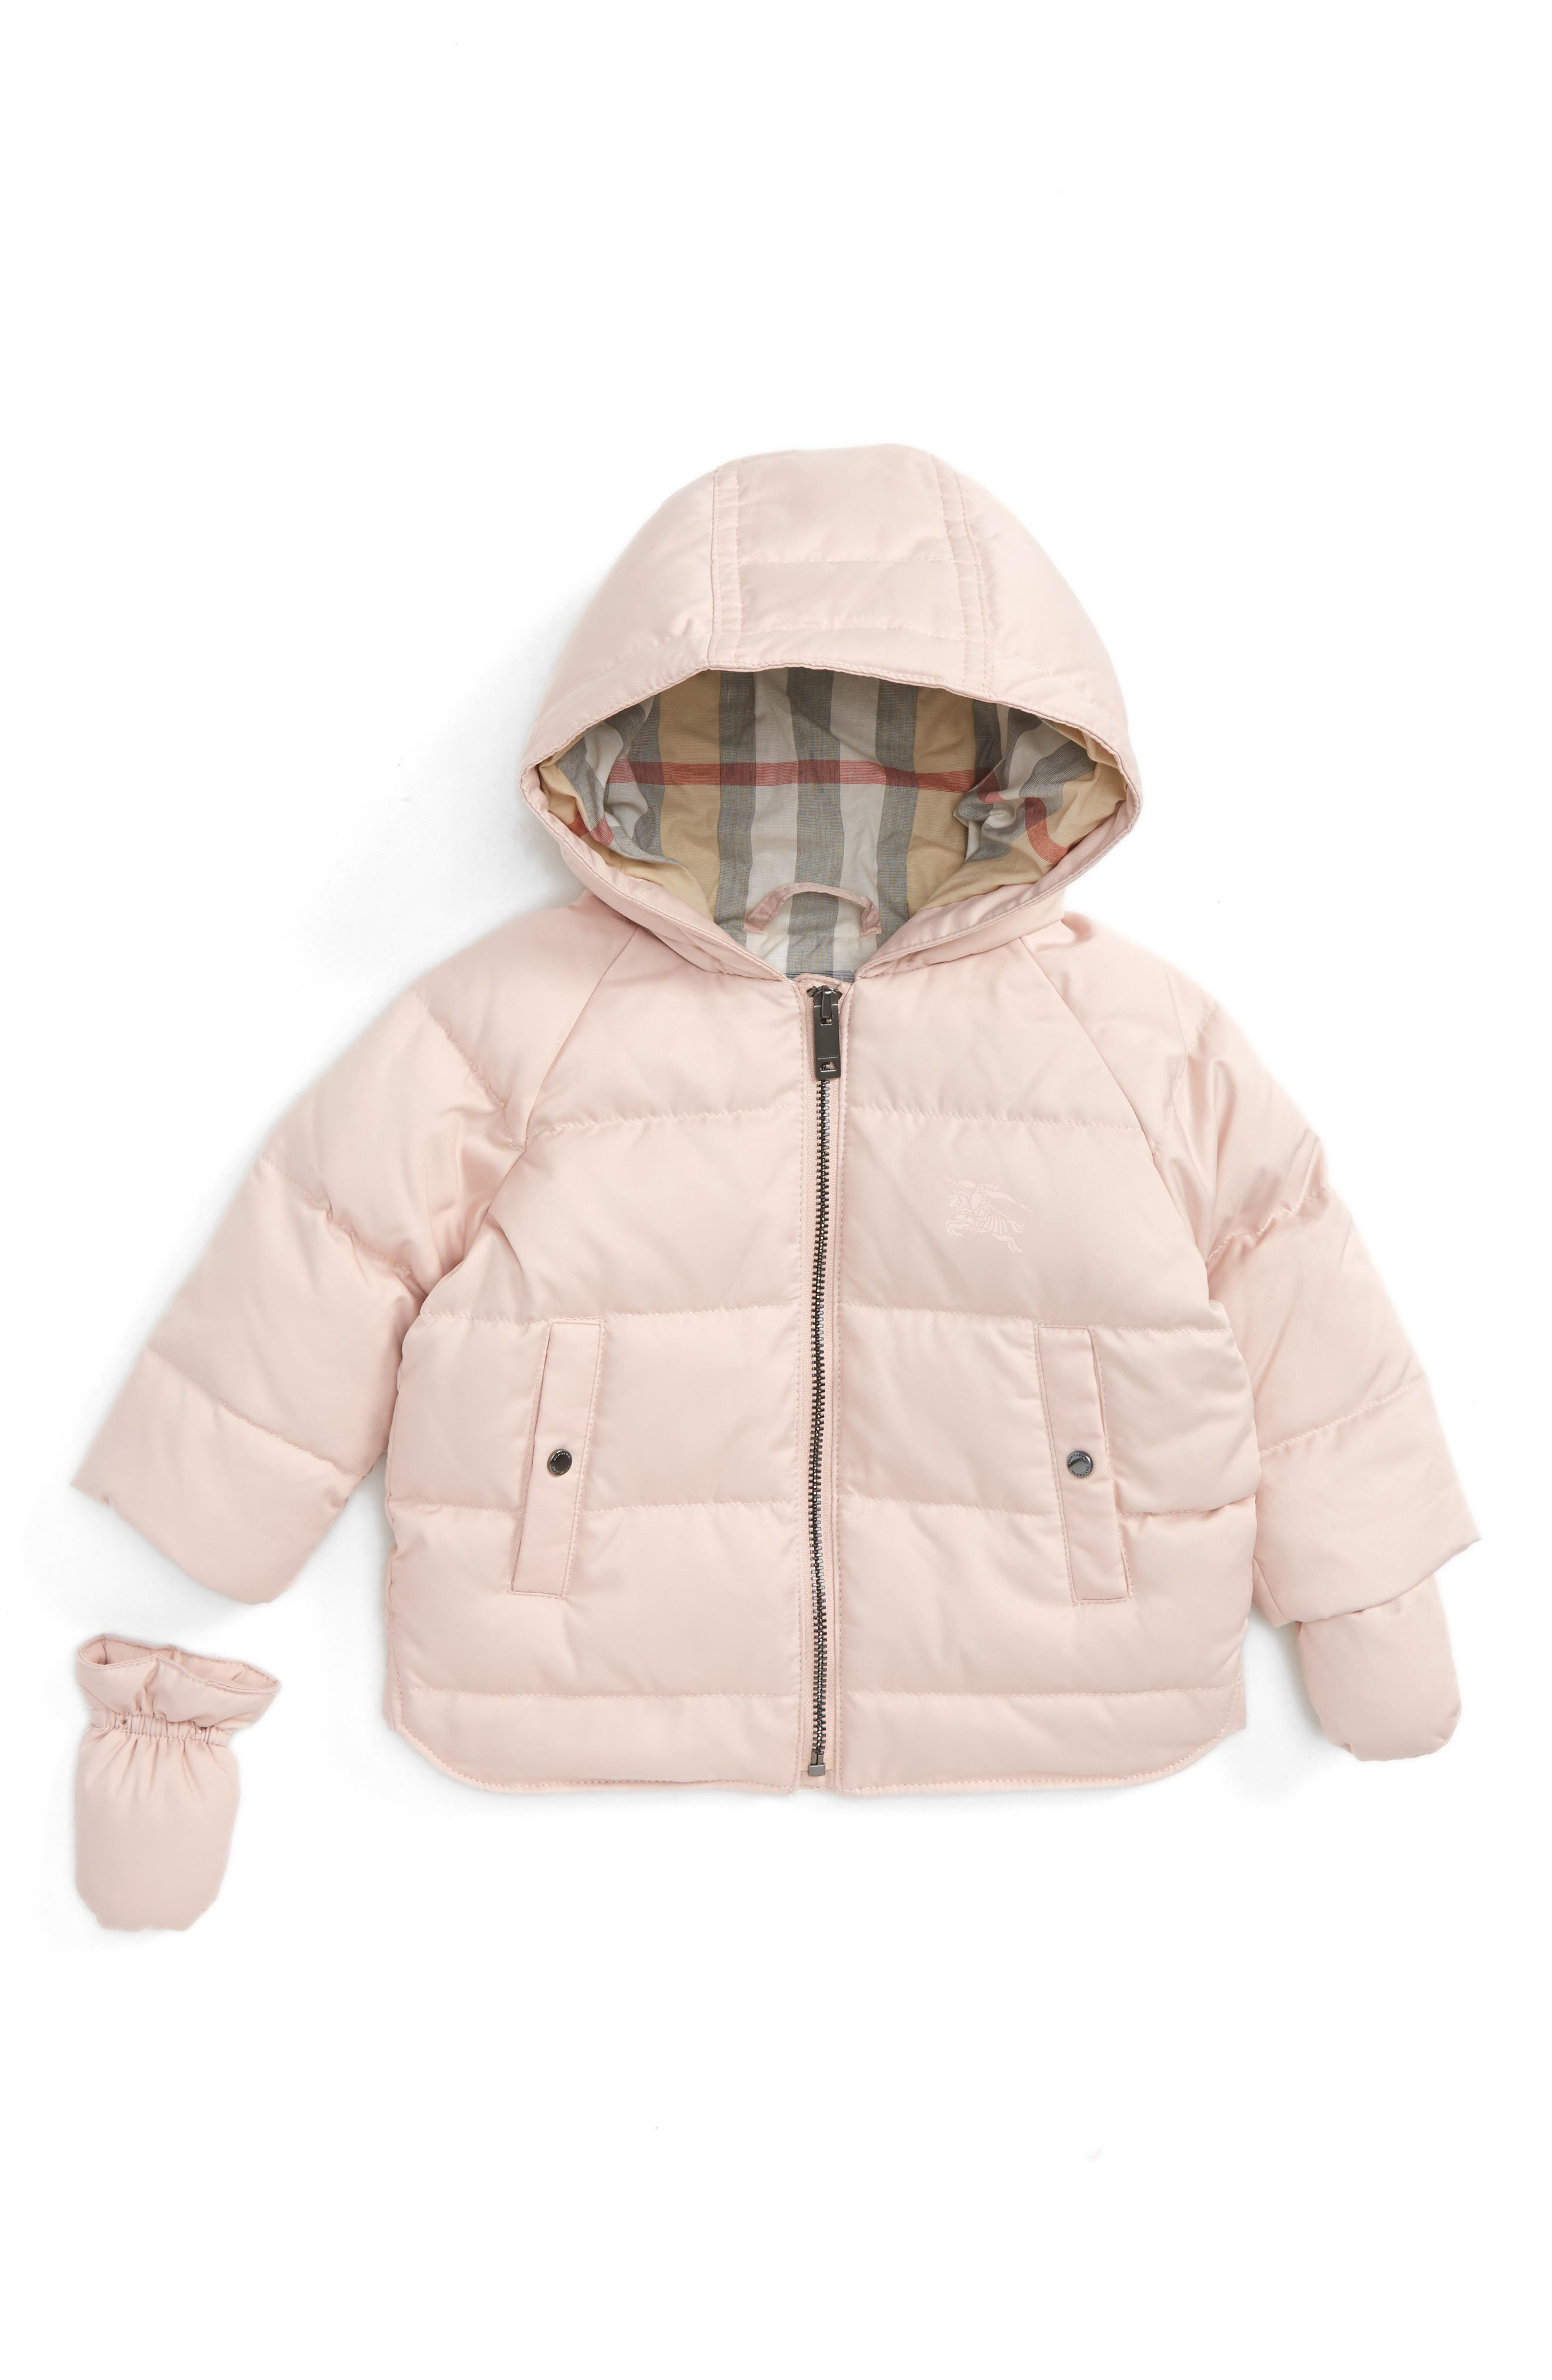 Alternate Image 1 Selected - Burberry Rilla Hooded Down Jacket with Mittens (Baby Girls)